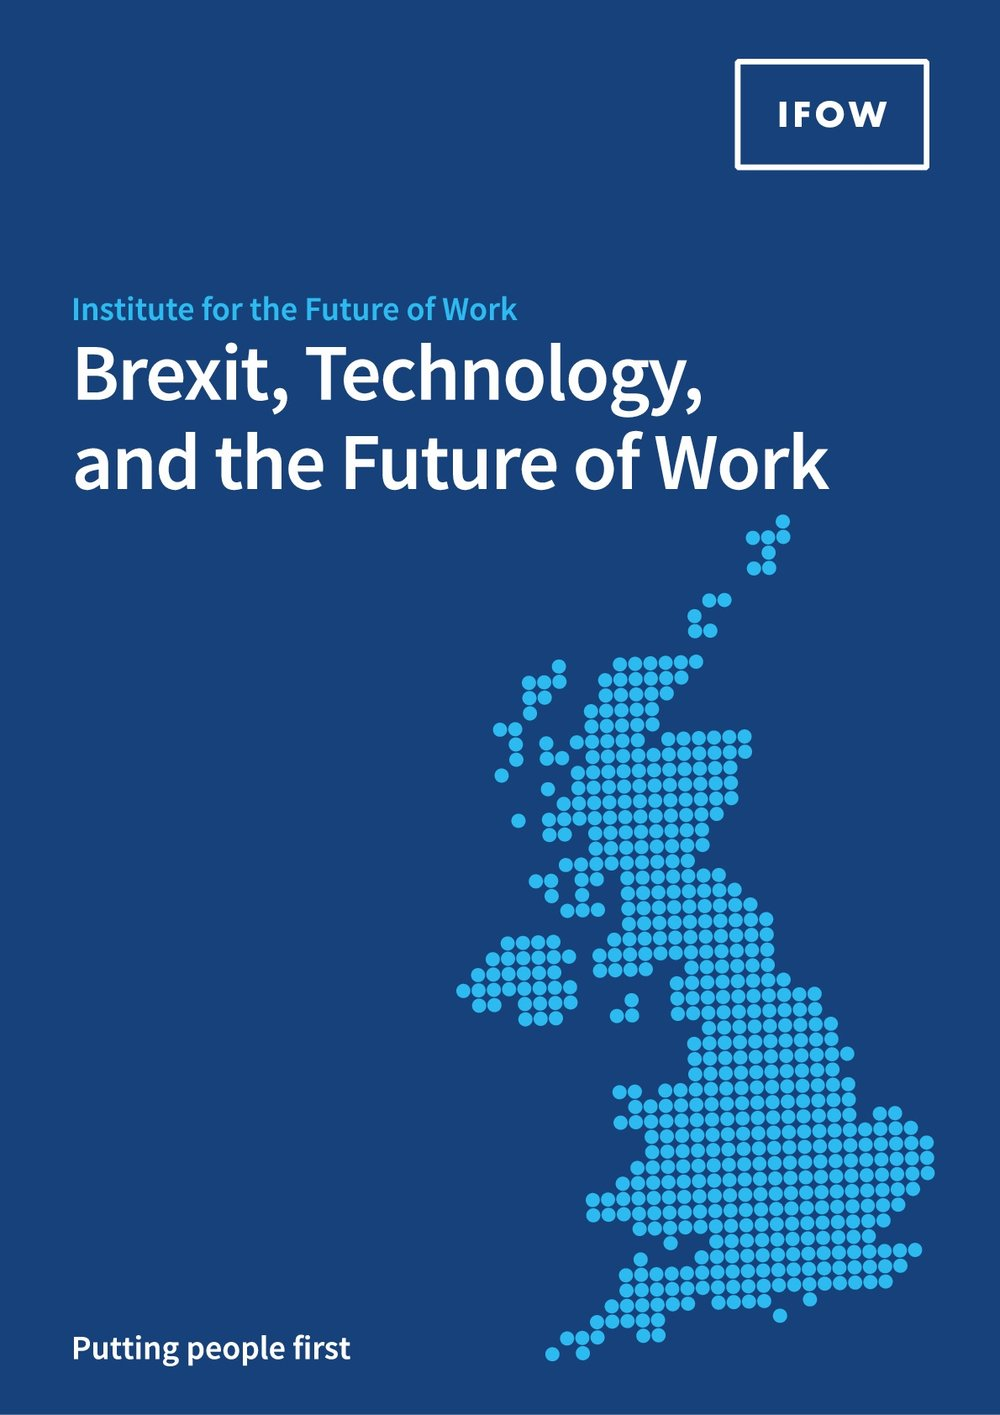 Brexit+technology+work+v9+final-001.jpg